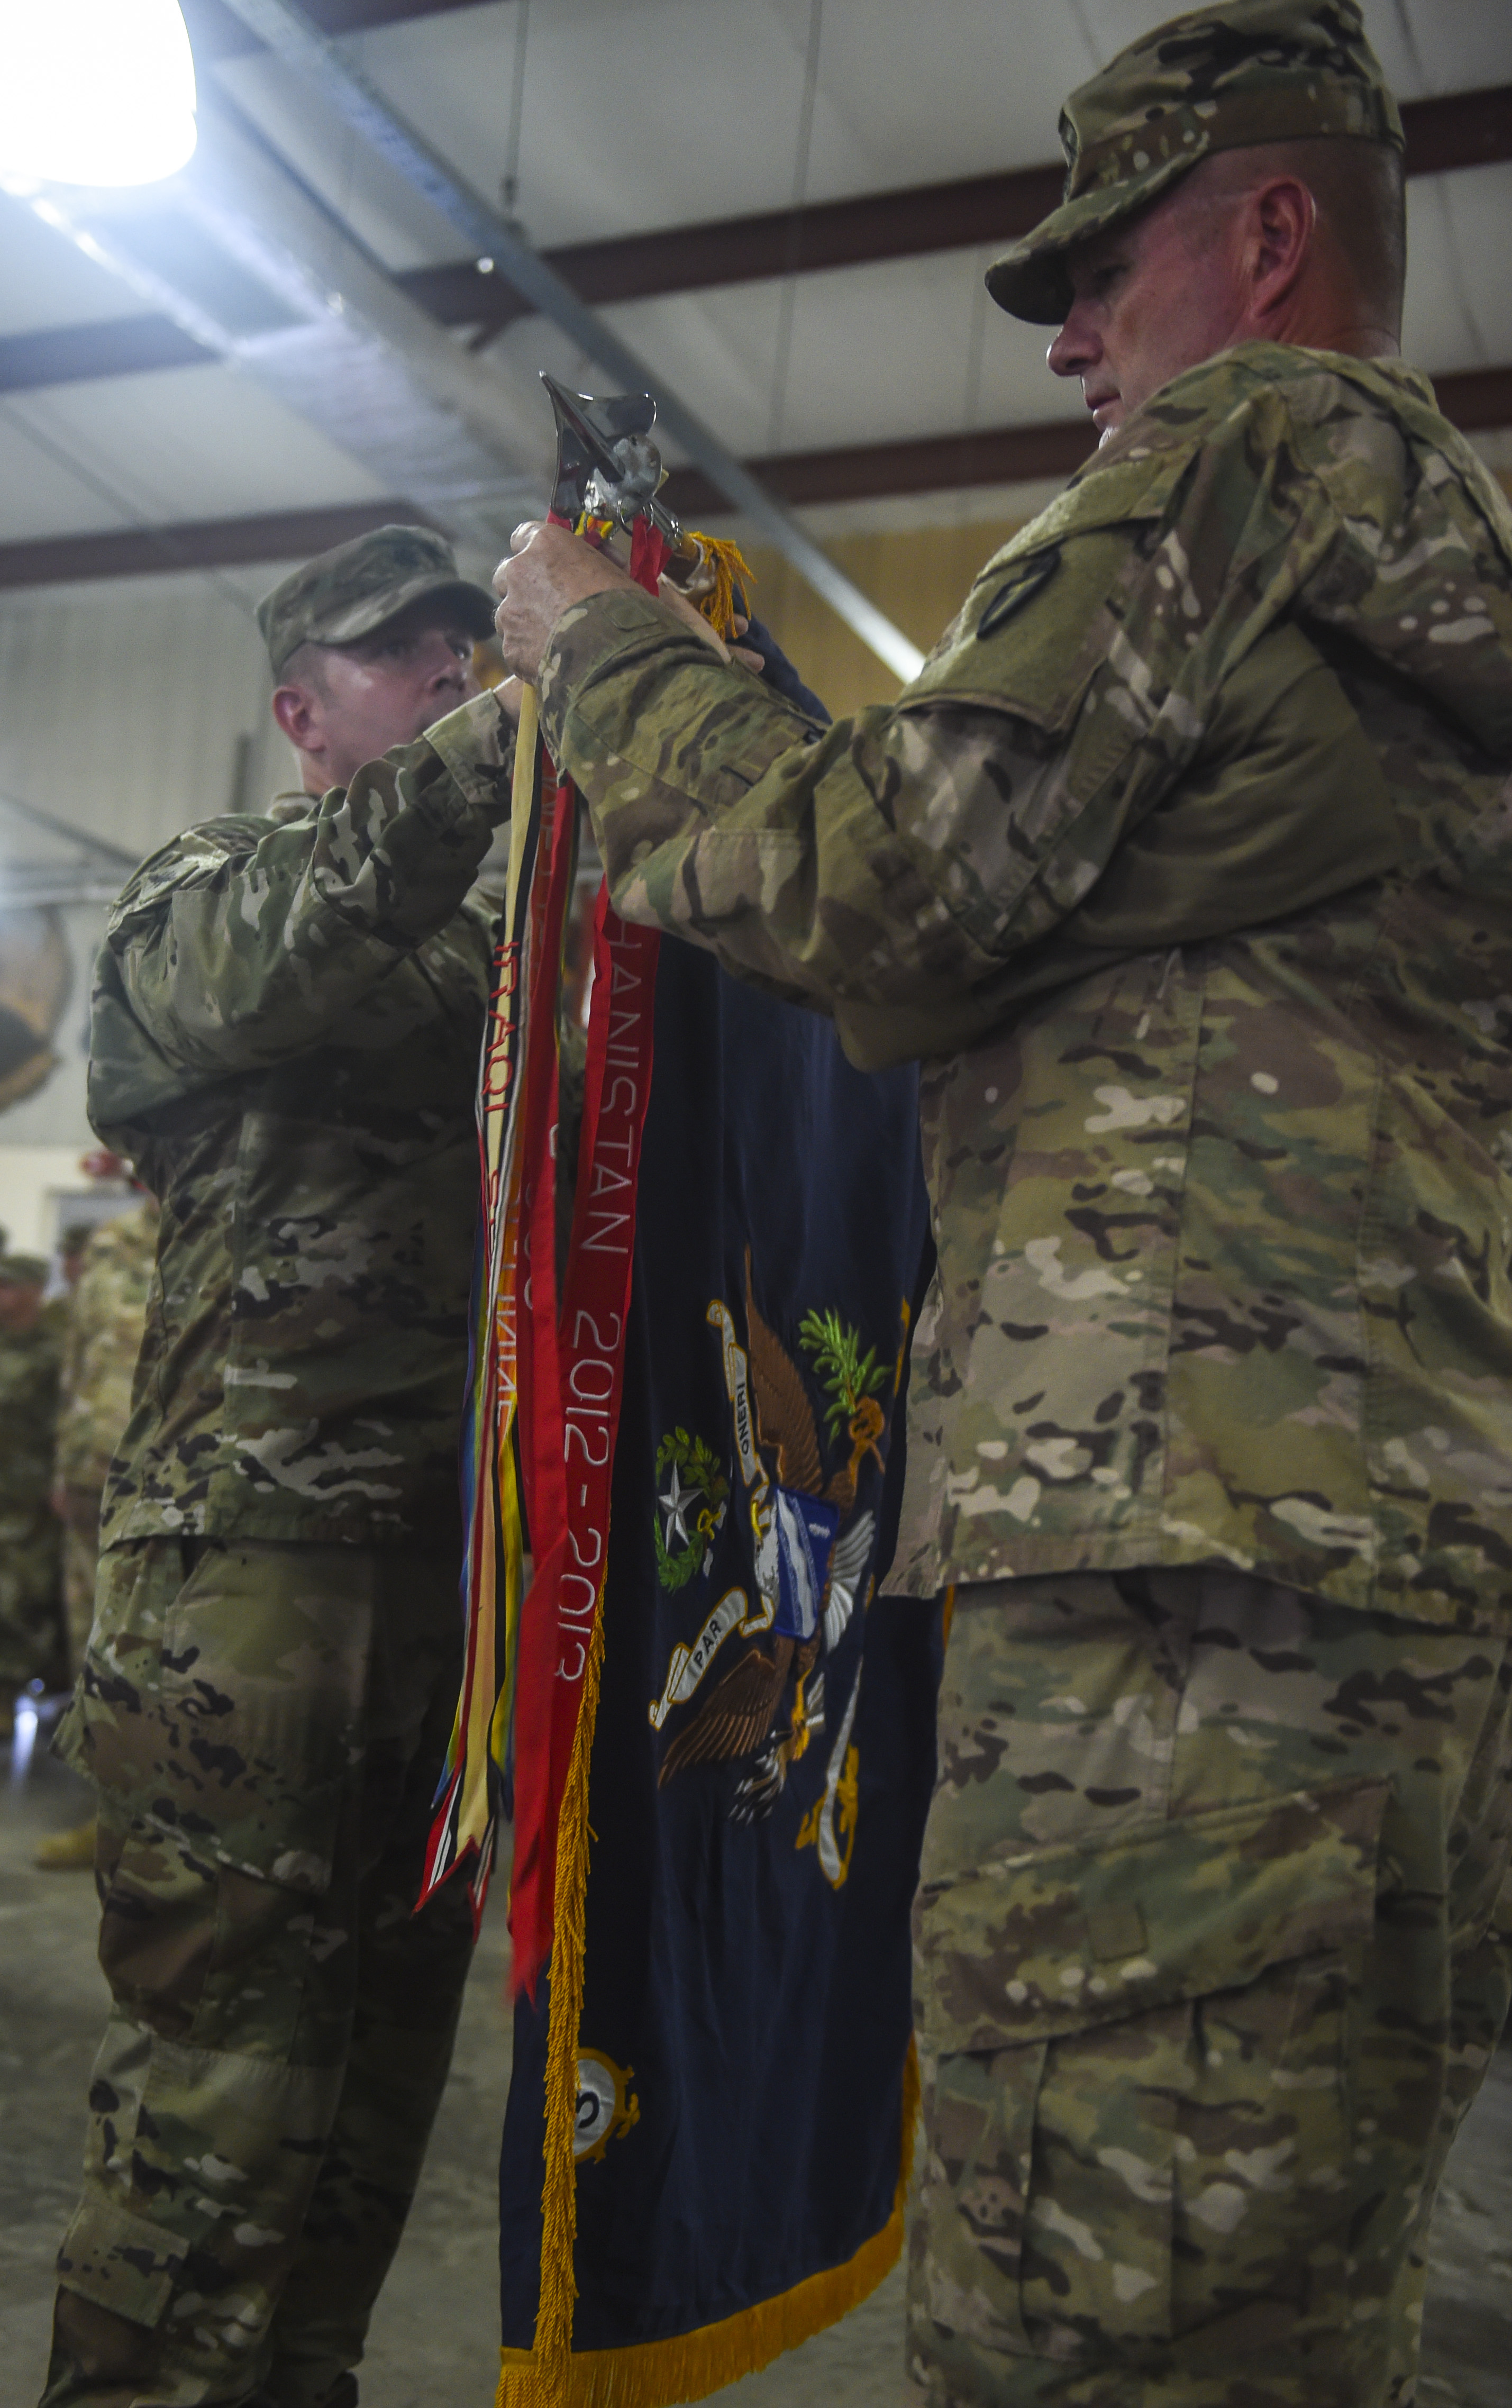 Third Battalion, 144th Infantry Regiment leaders U.S. Army Lt. Col. Ross Walker (left), battalion commander, and U.S. Army Command Sgt. Maj. Clinton Petty, command sergeant major, unfurl the unit's colors during a transfer of authority ceremony at Camp Lemonnier, Djibouti, Nov. 1, 2017. The transfer of authority ceremony is a longstanding Army tradition that signifies when a new unit takes over full responsibility for a mission. The 3-144th IN took responsibility from the 1st Battalion, 153rd Infantry Regiment. (U.S. Air Force photo by Staff Sgt. Timothy Moore)